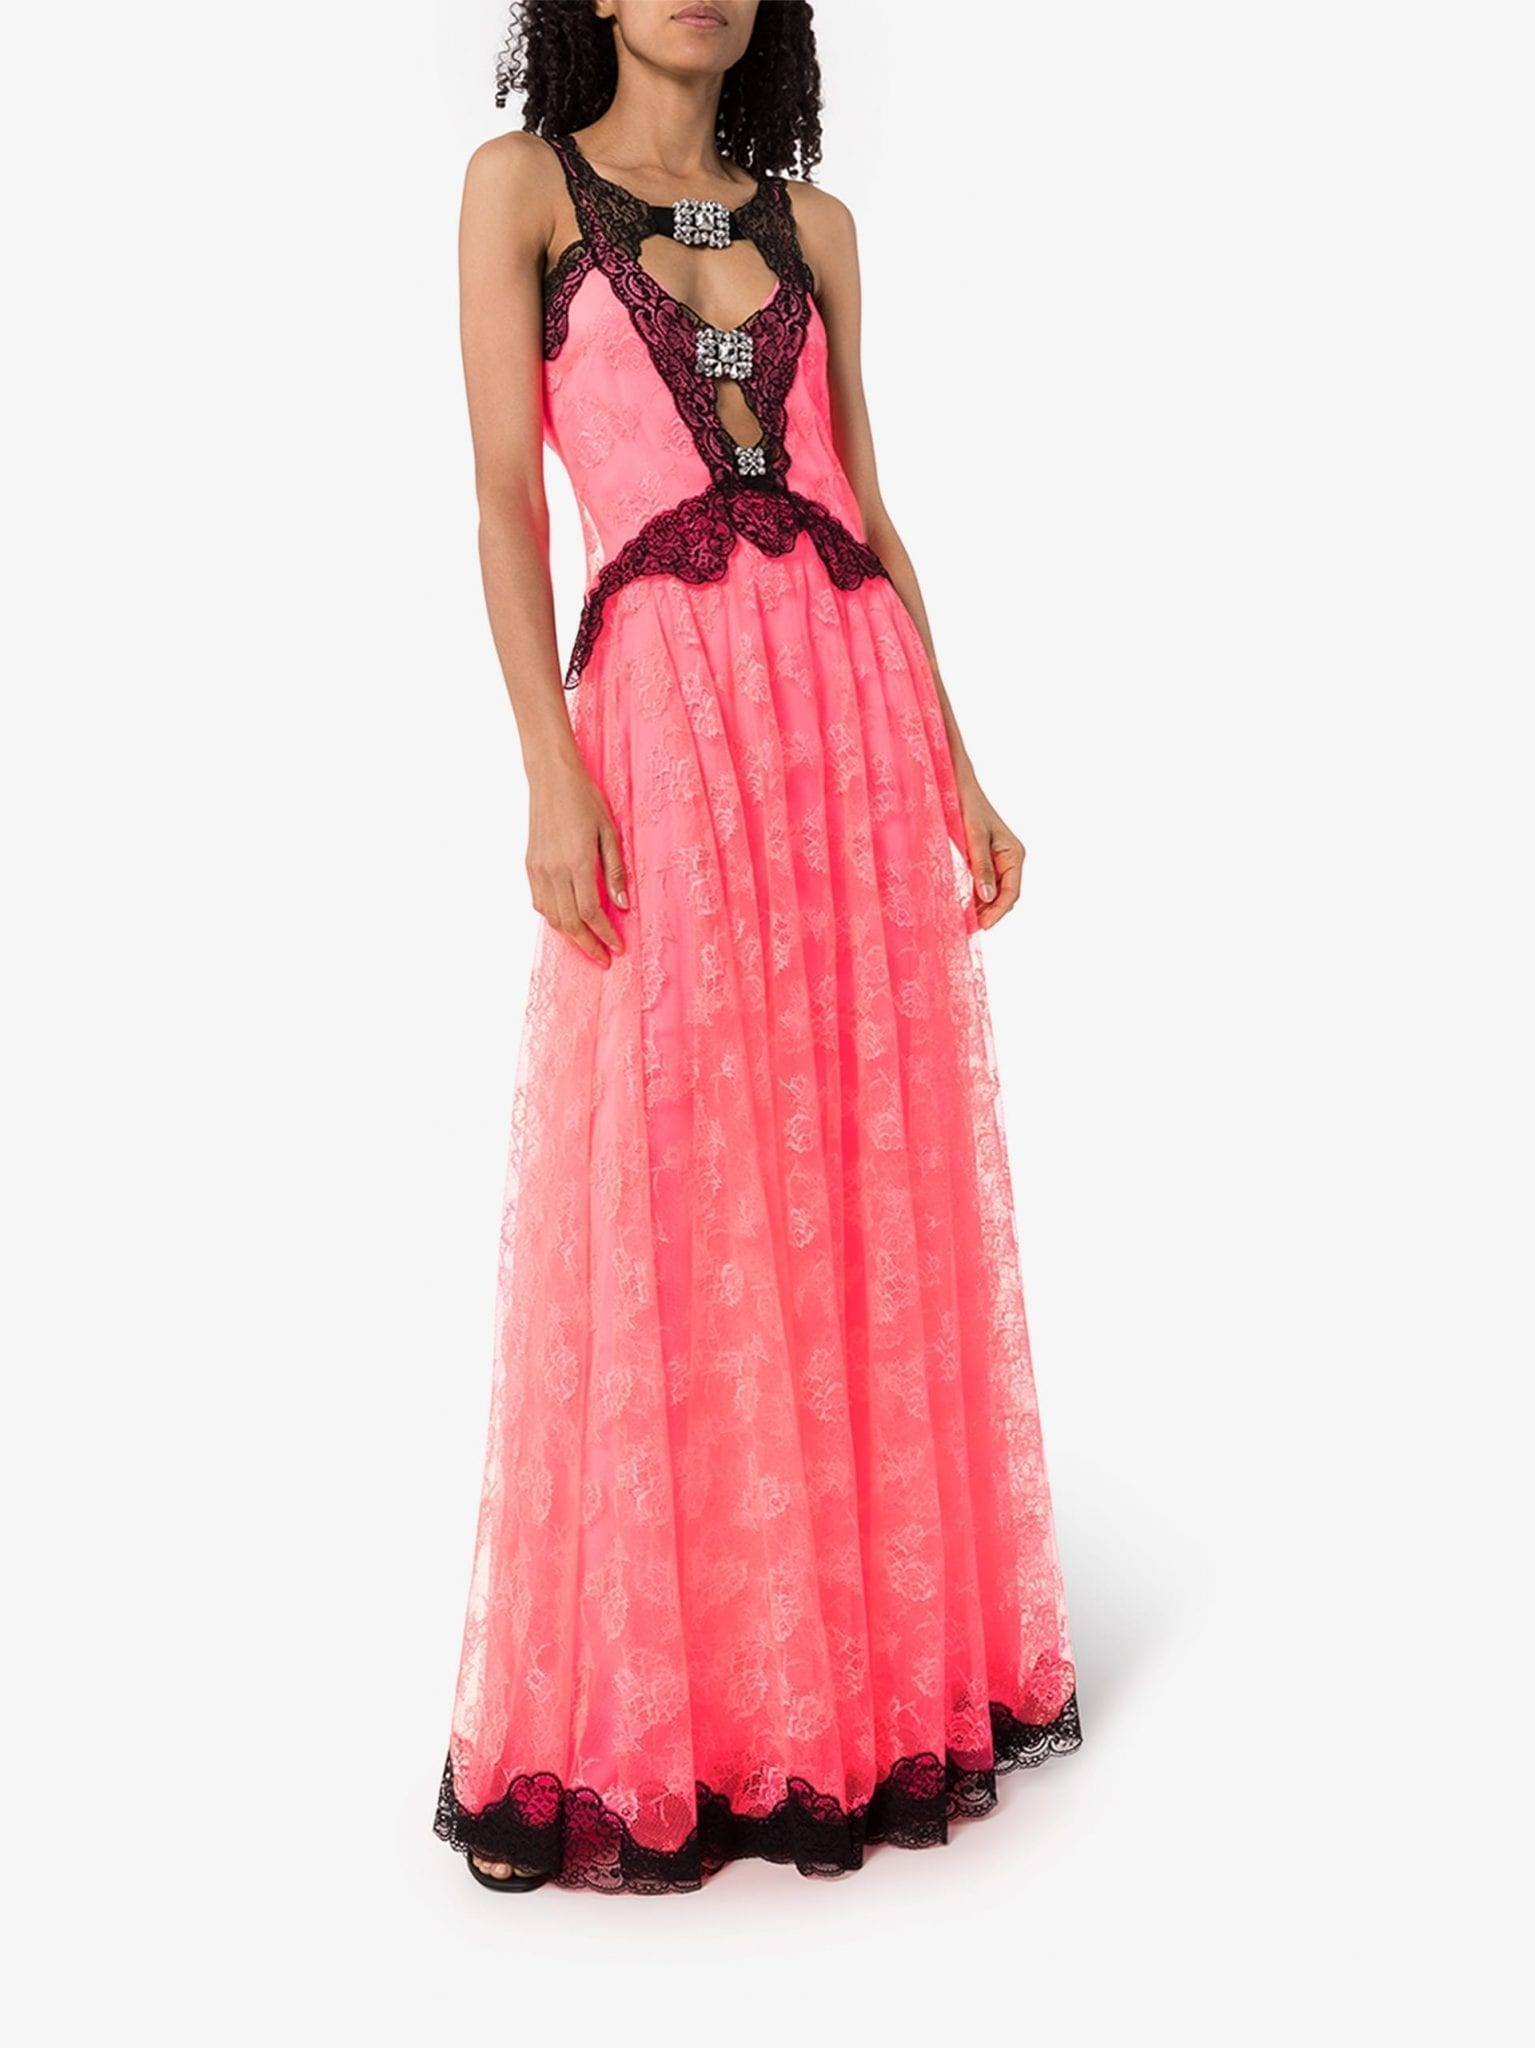 CHRISTOPHER KANE Neon Lace Maxi Dress